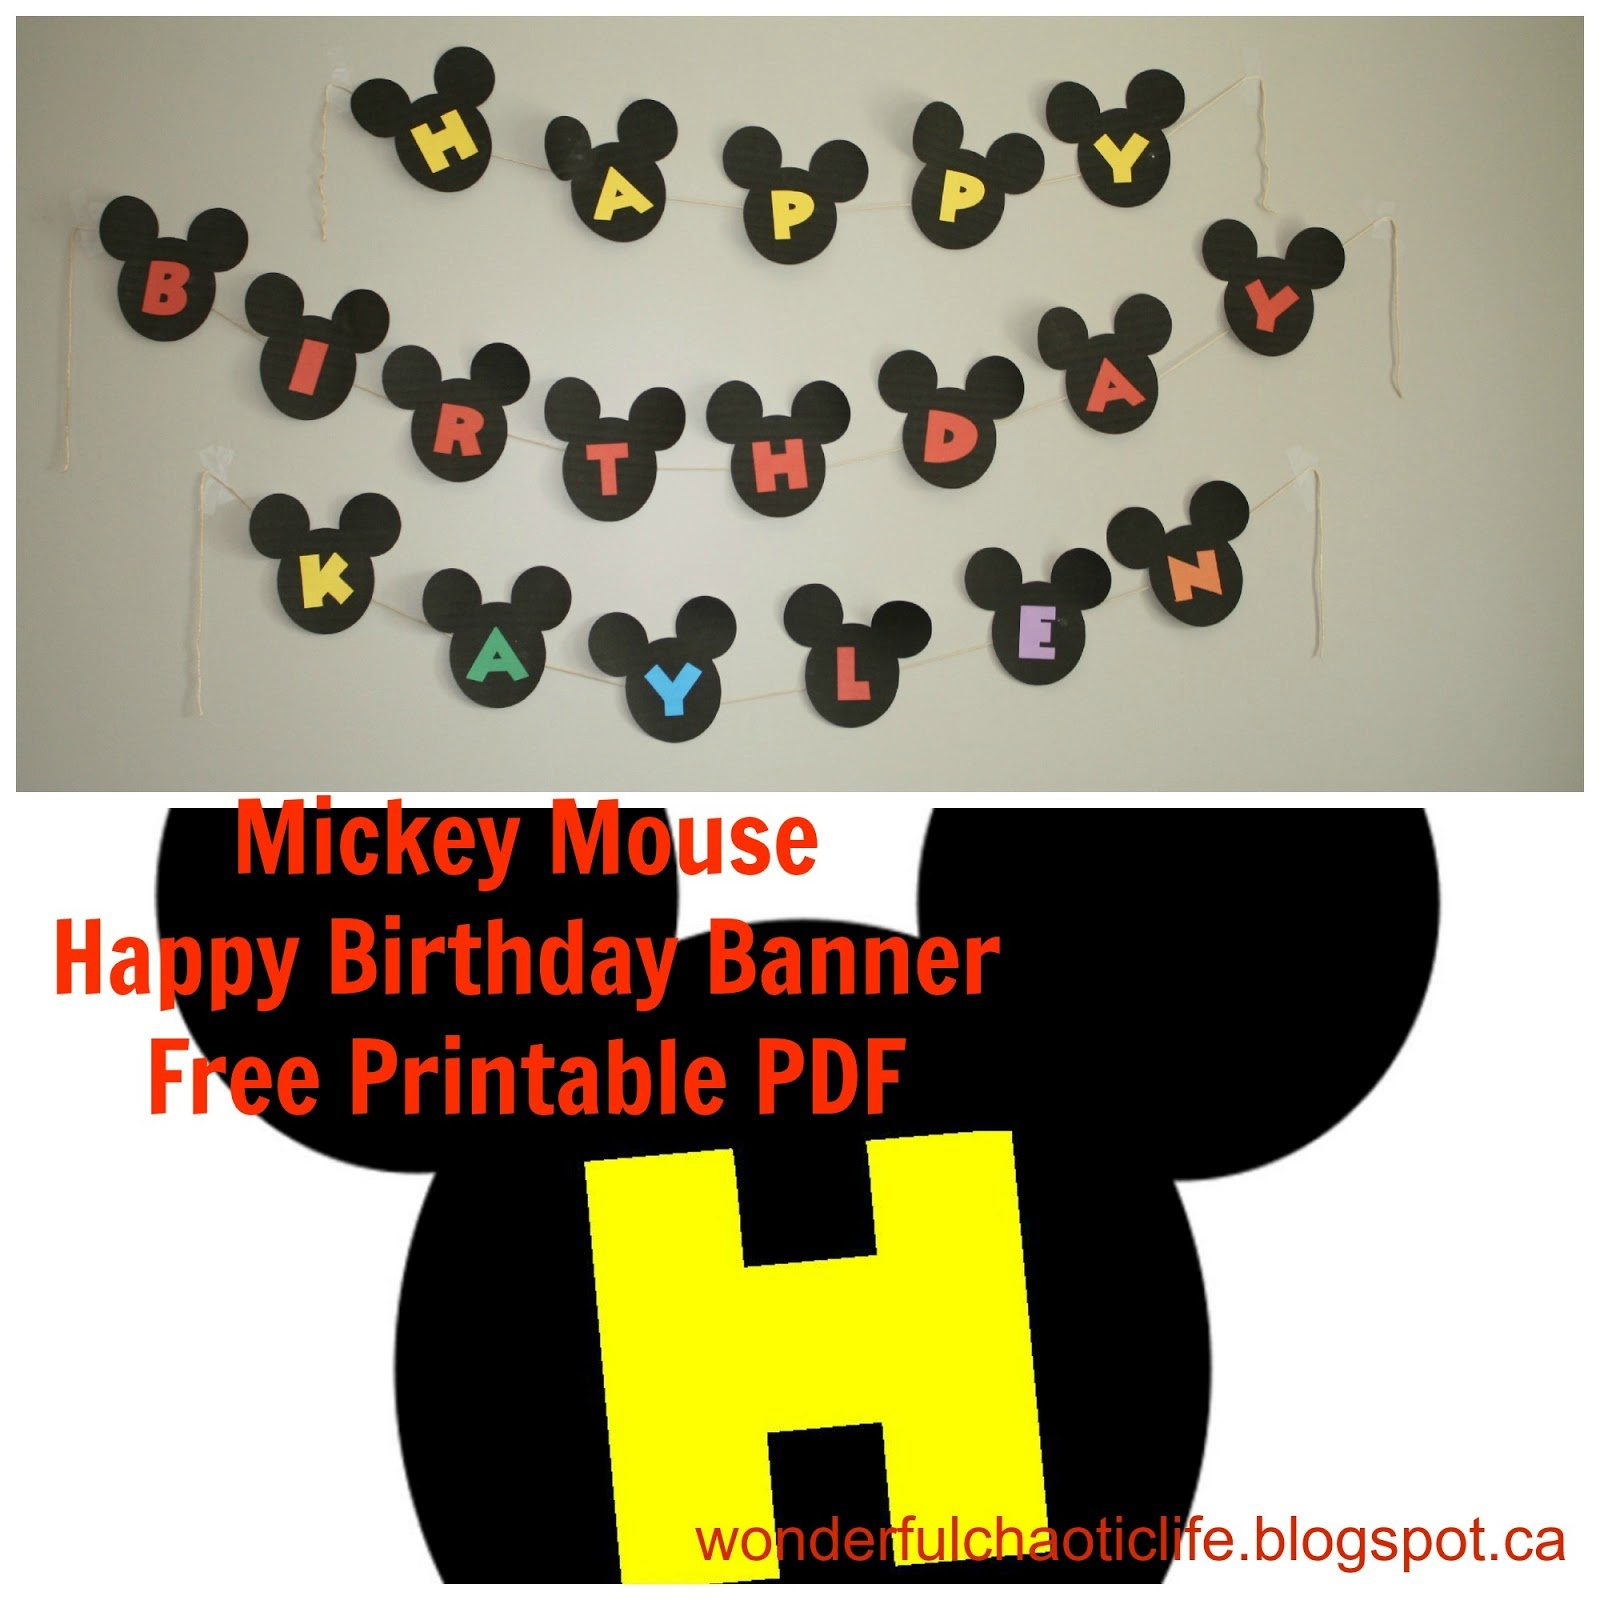 It's My Wonderful Chaotic Life: Mickey Mouse Birthday Party Free - Free Printable Mickey Mouse Birthday Banner